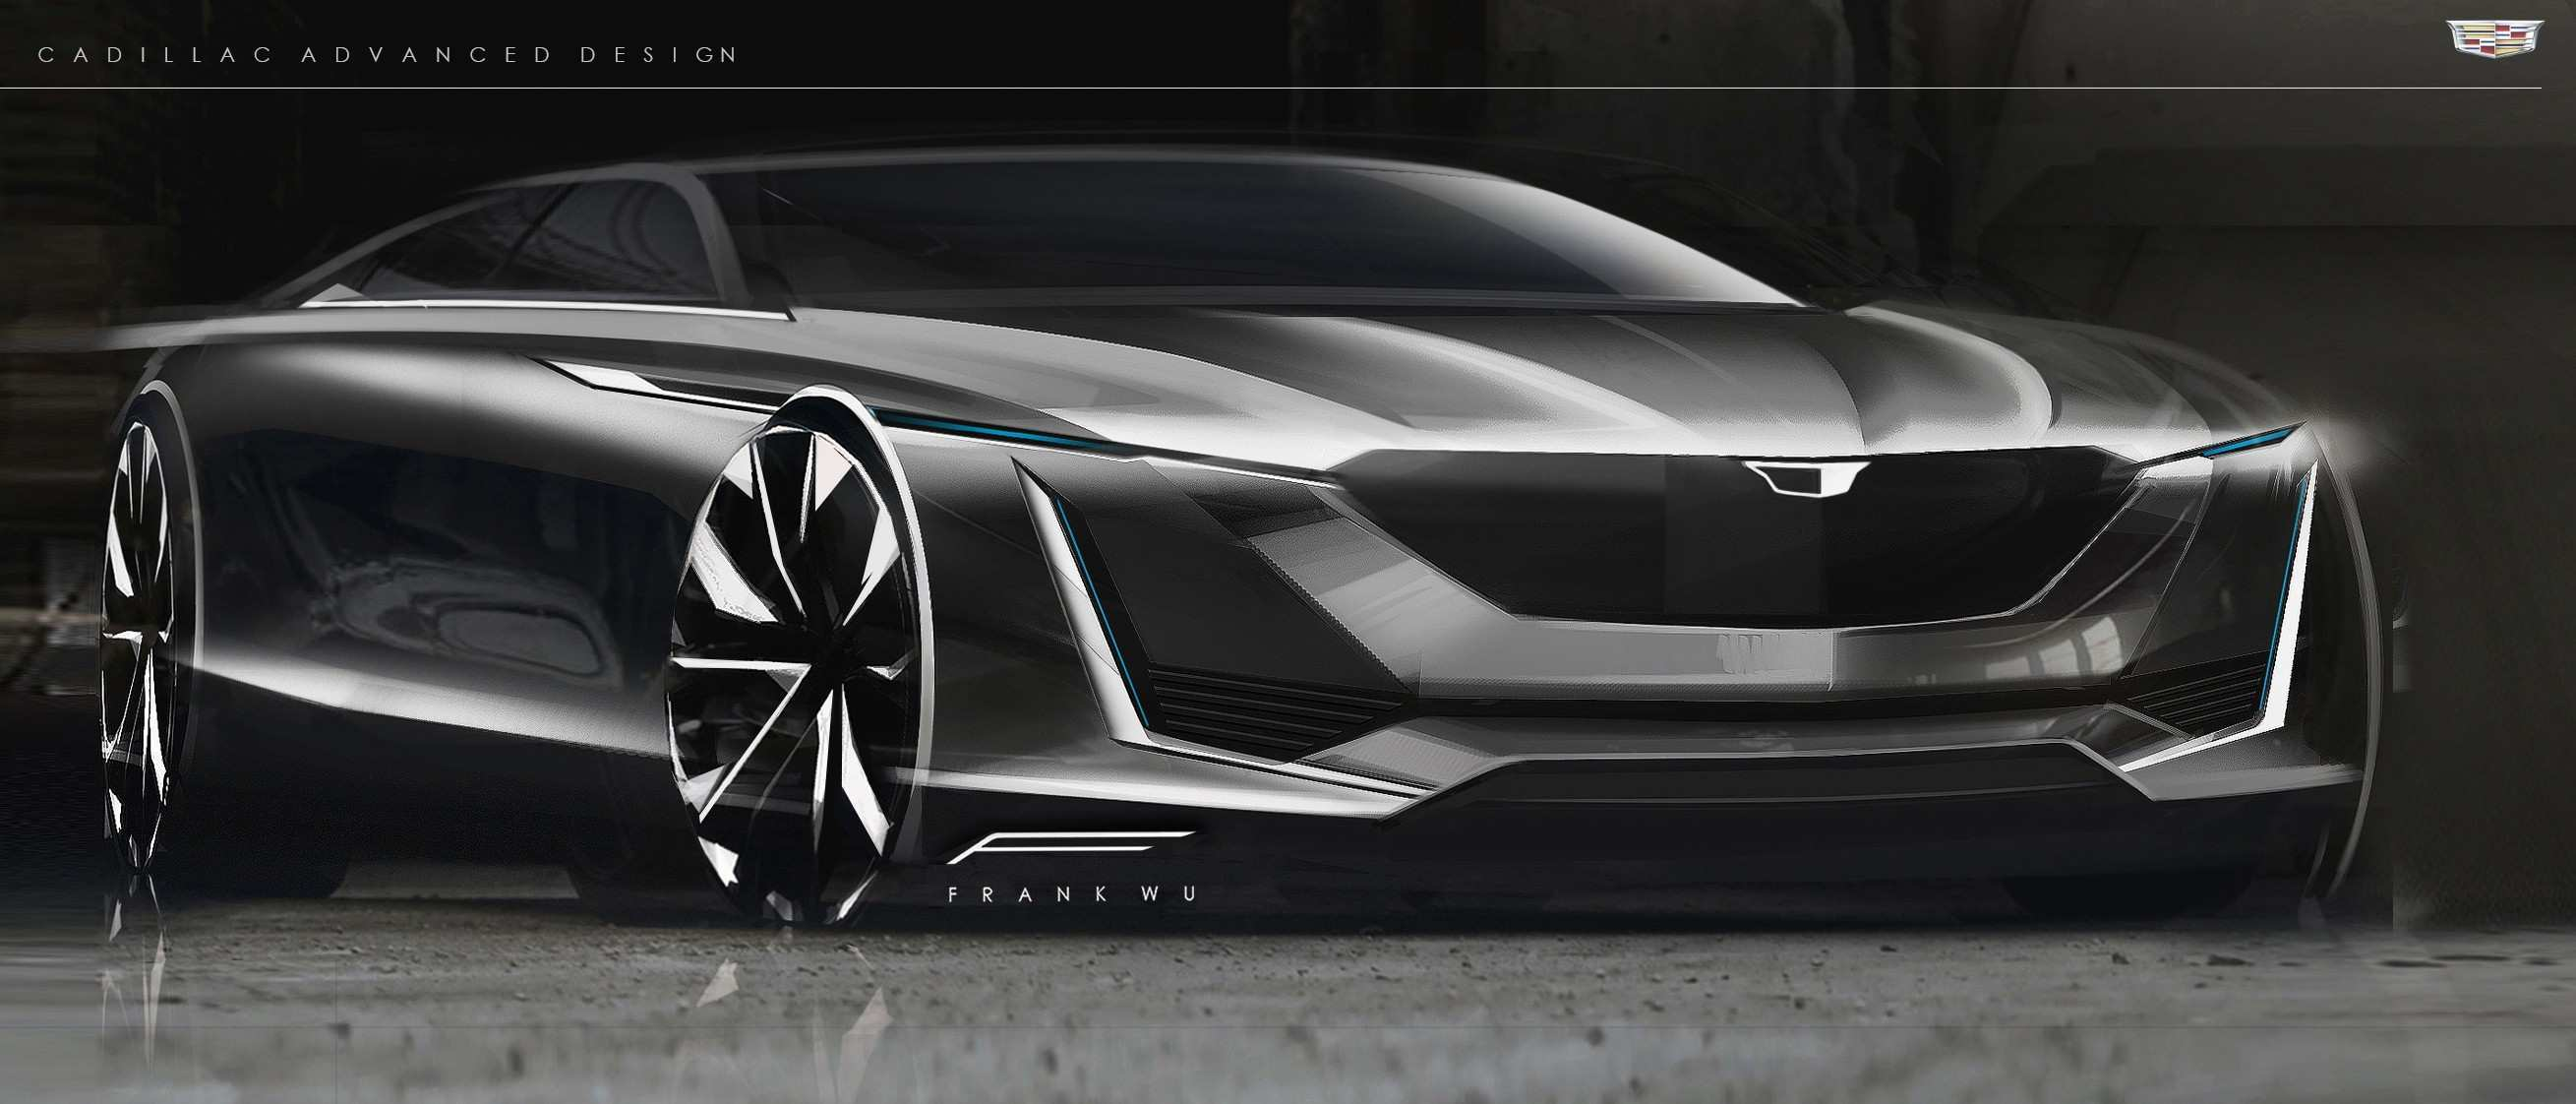 74 Concept of 2020 Cadillac Sports Car Concept with 2020 Cadillac Sports Car